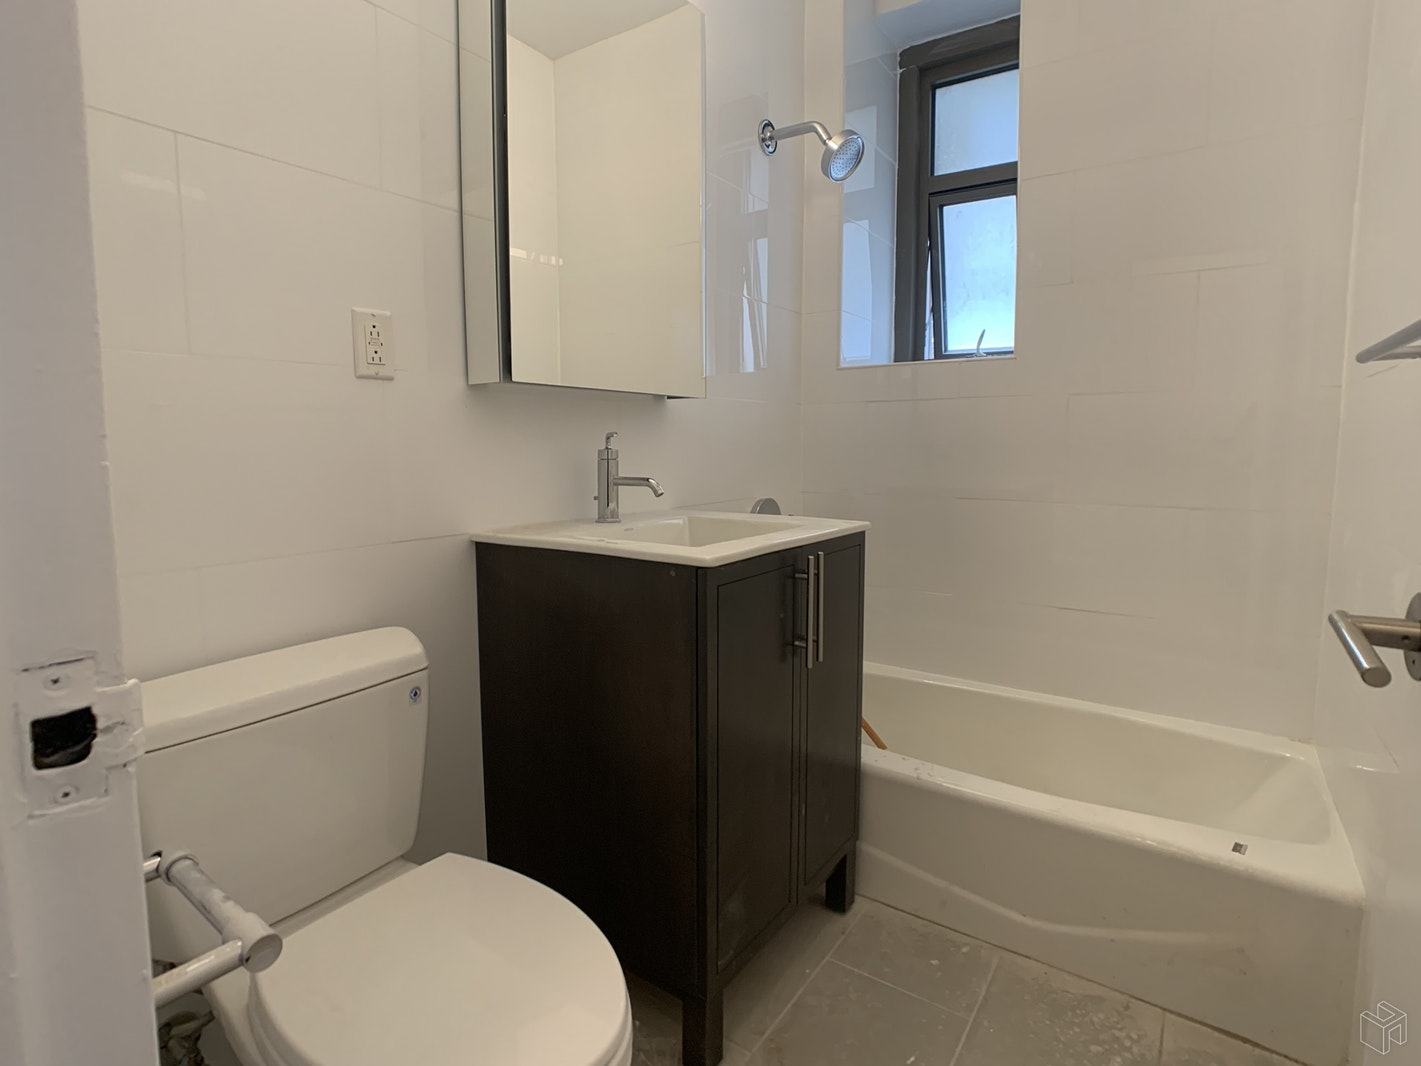 4 Park Avenue, Midtown East, NYC, 10016, Price Not Disclosed, Rented Property, Halstead Real Estate, Photo 5